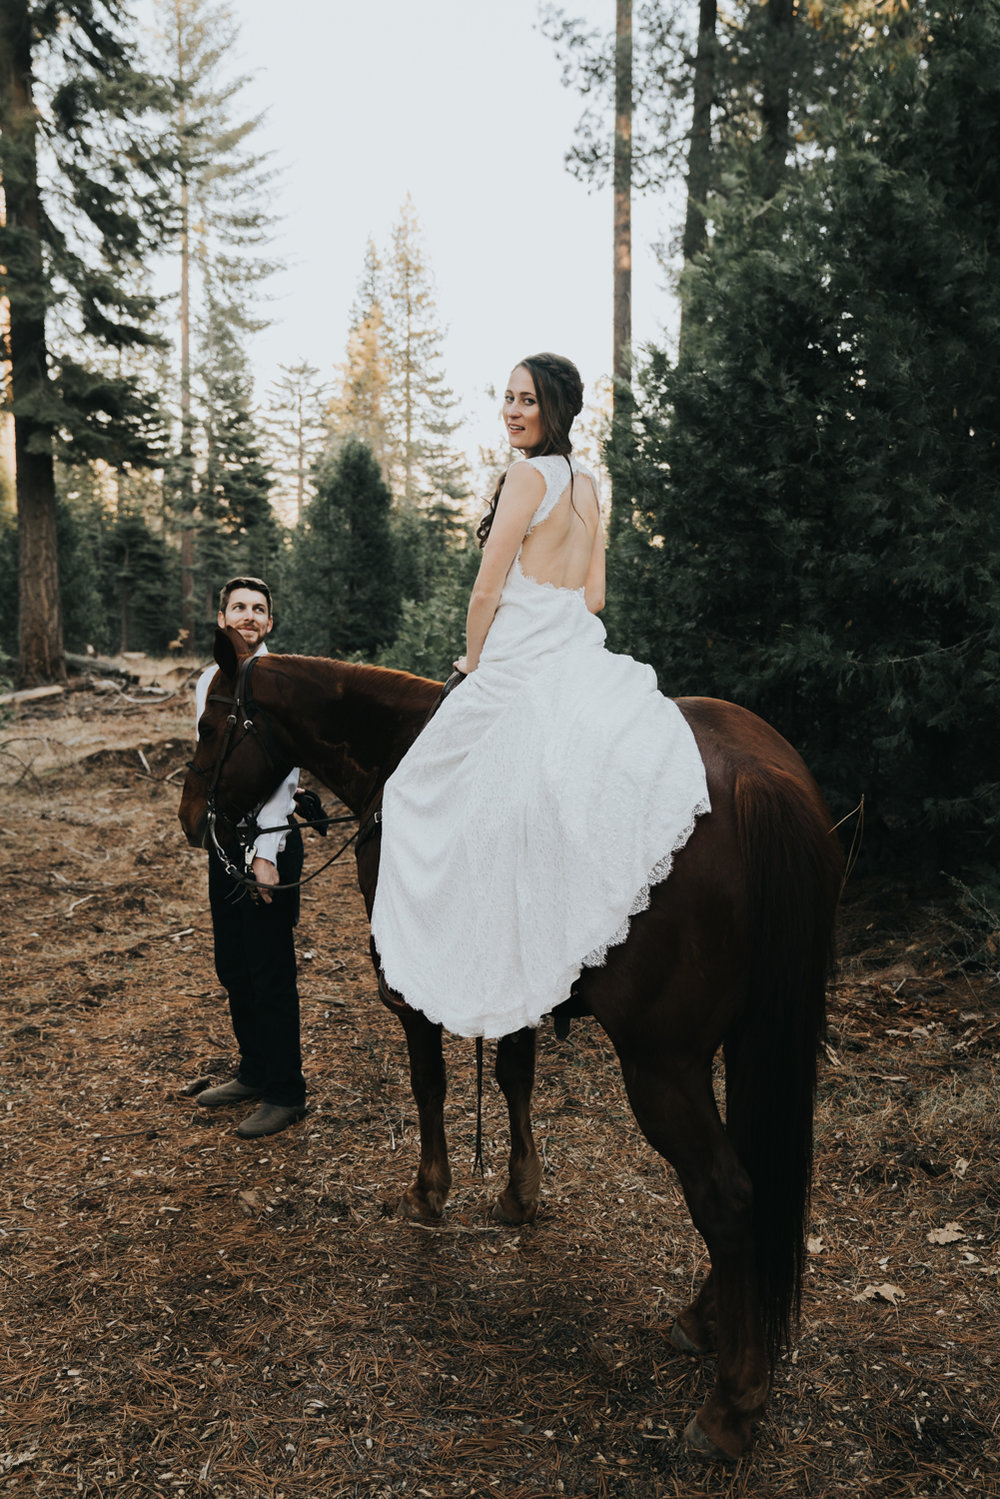 Mountain Elopement in Shaver Lake California by Bessie Young Photography Wild Elopement - Adventure Elopement-298.jpg